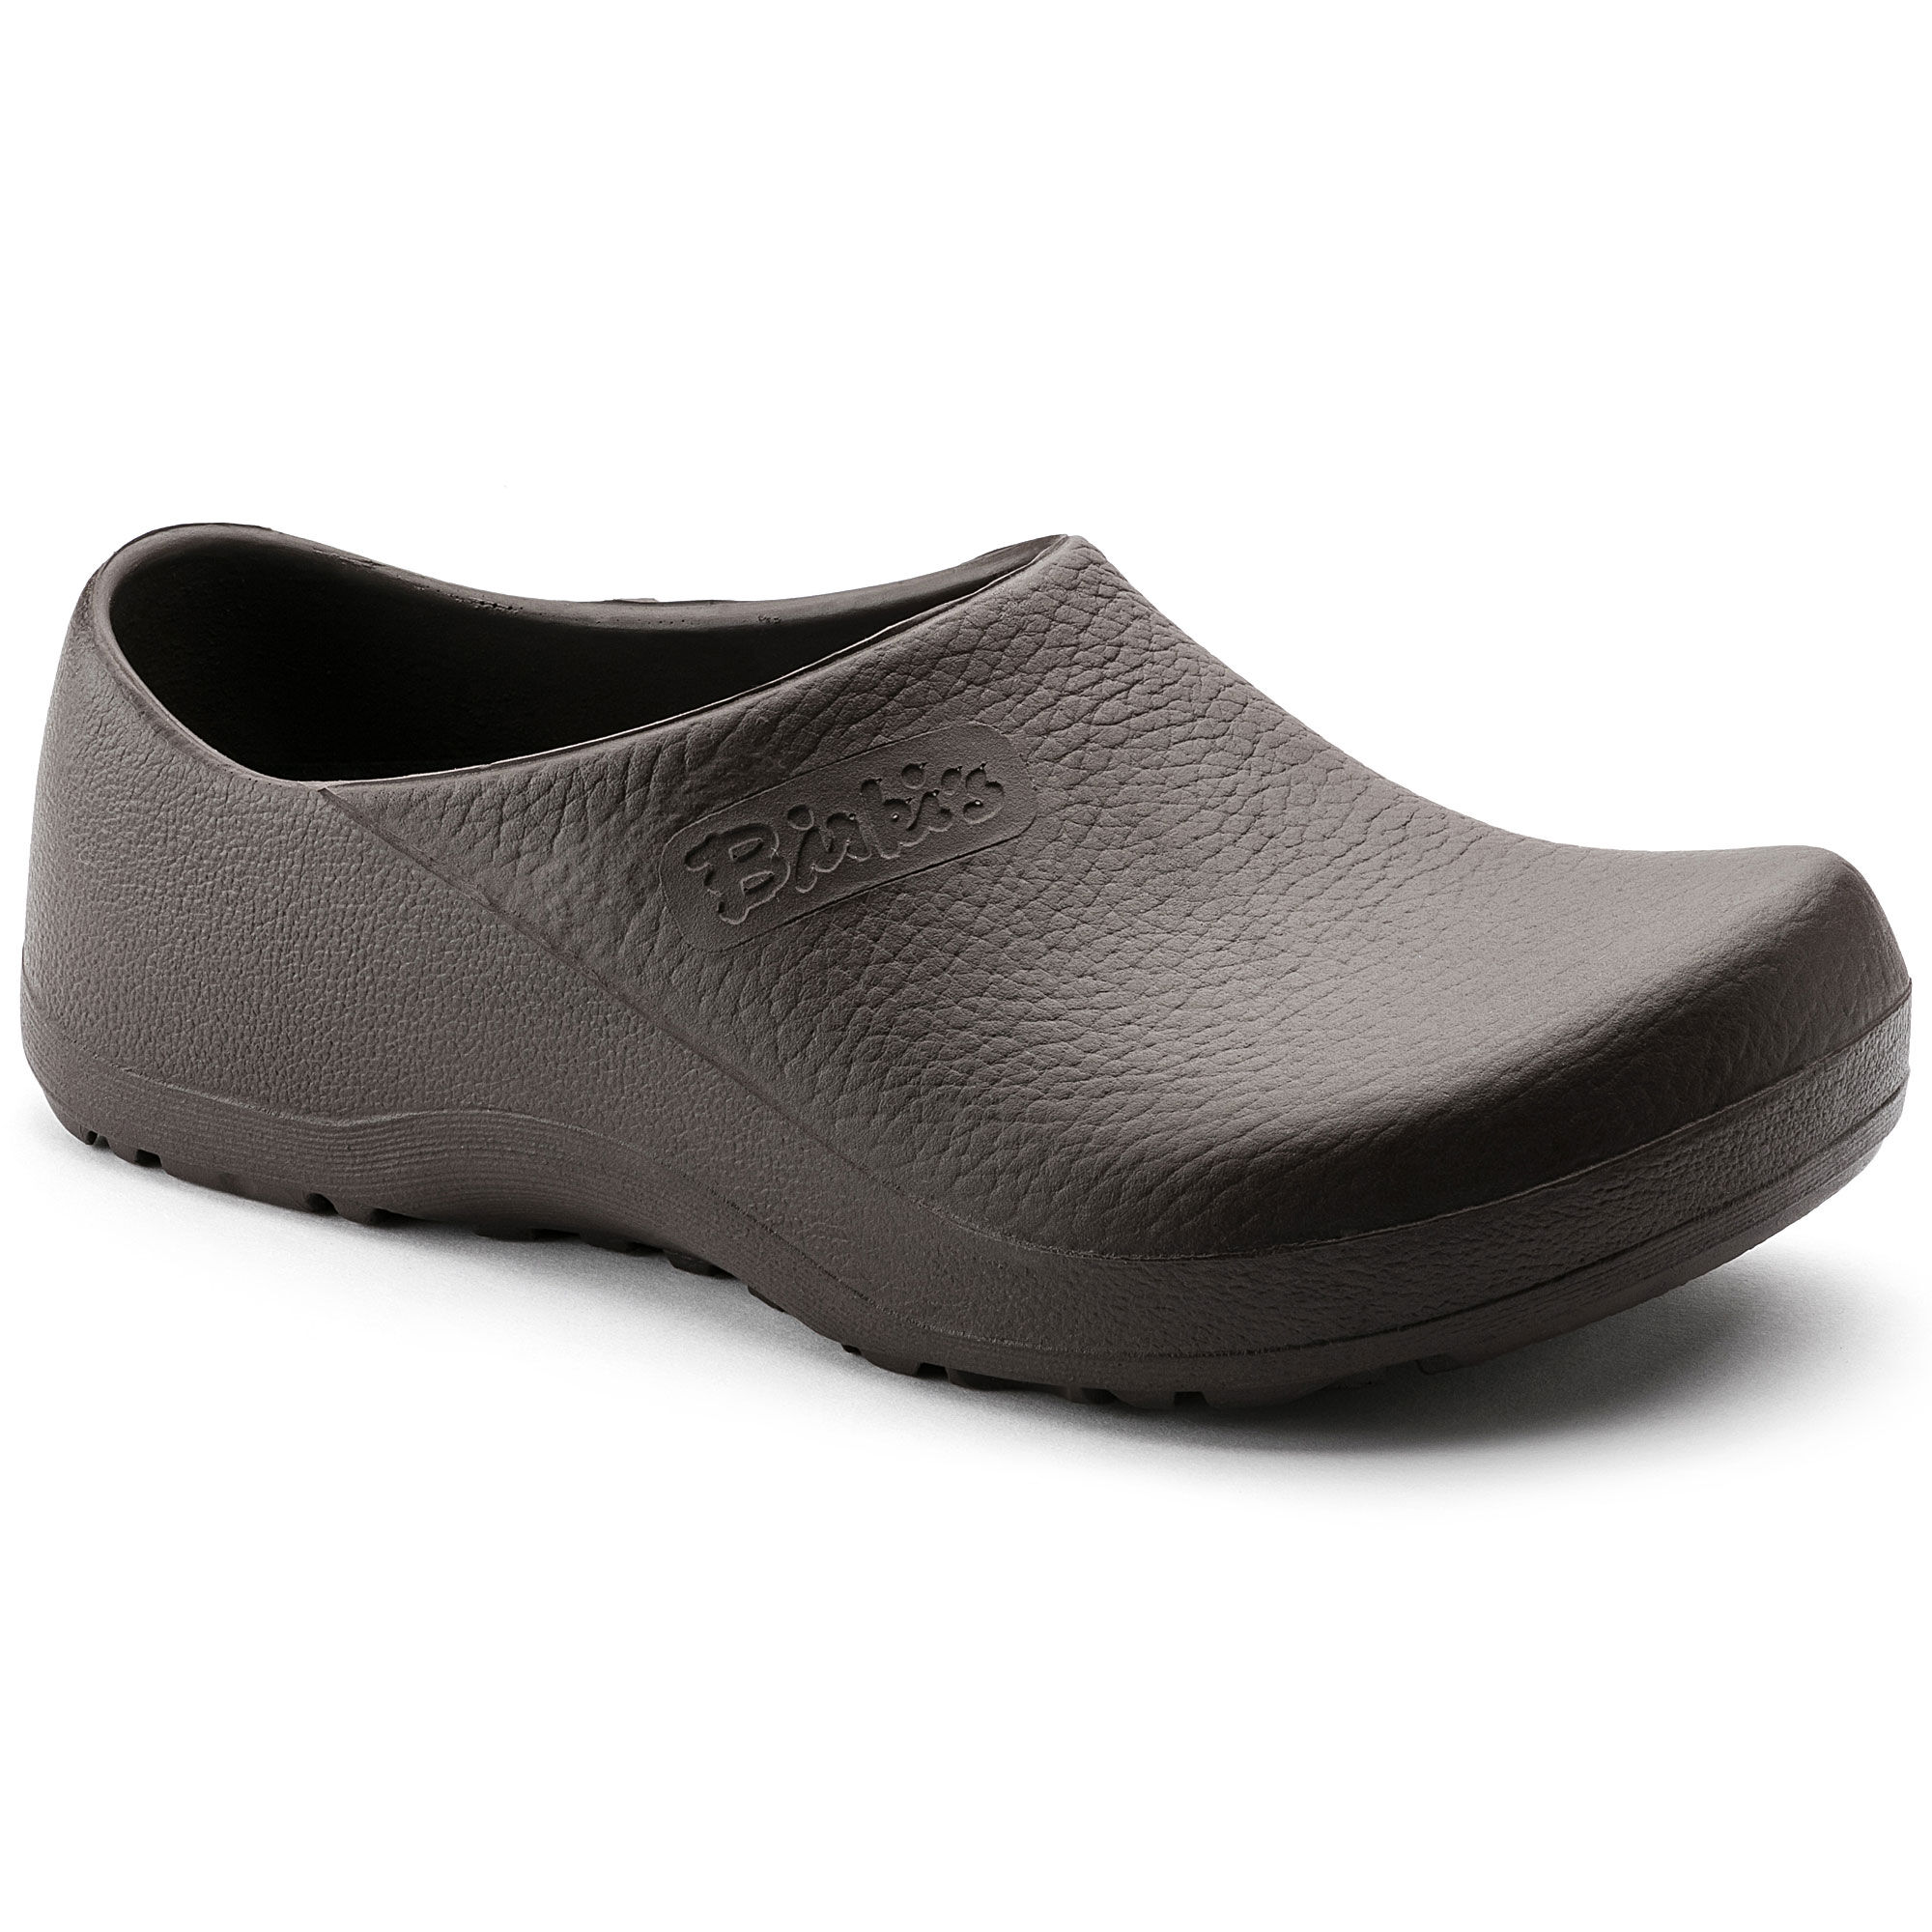 Nonslip work shoes   buy online at